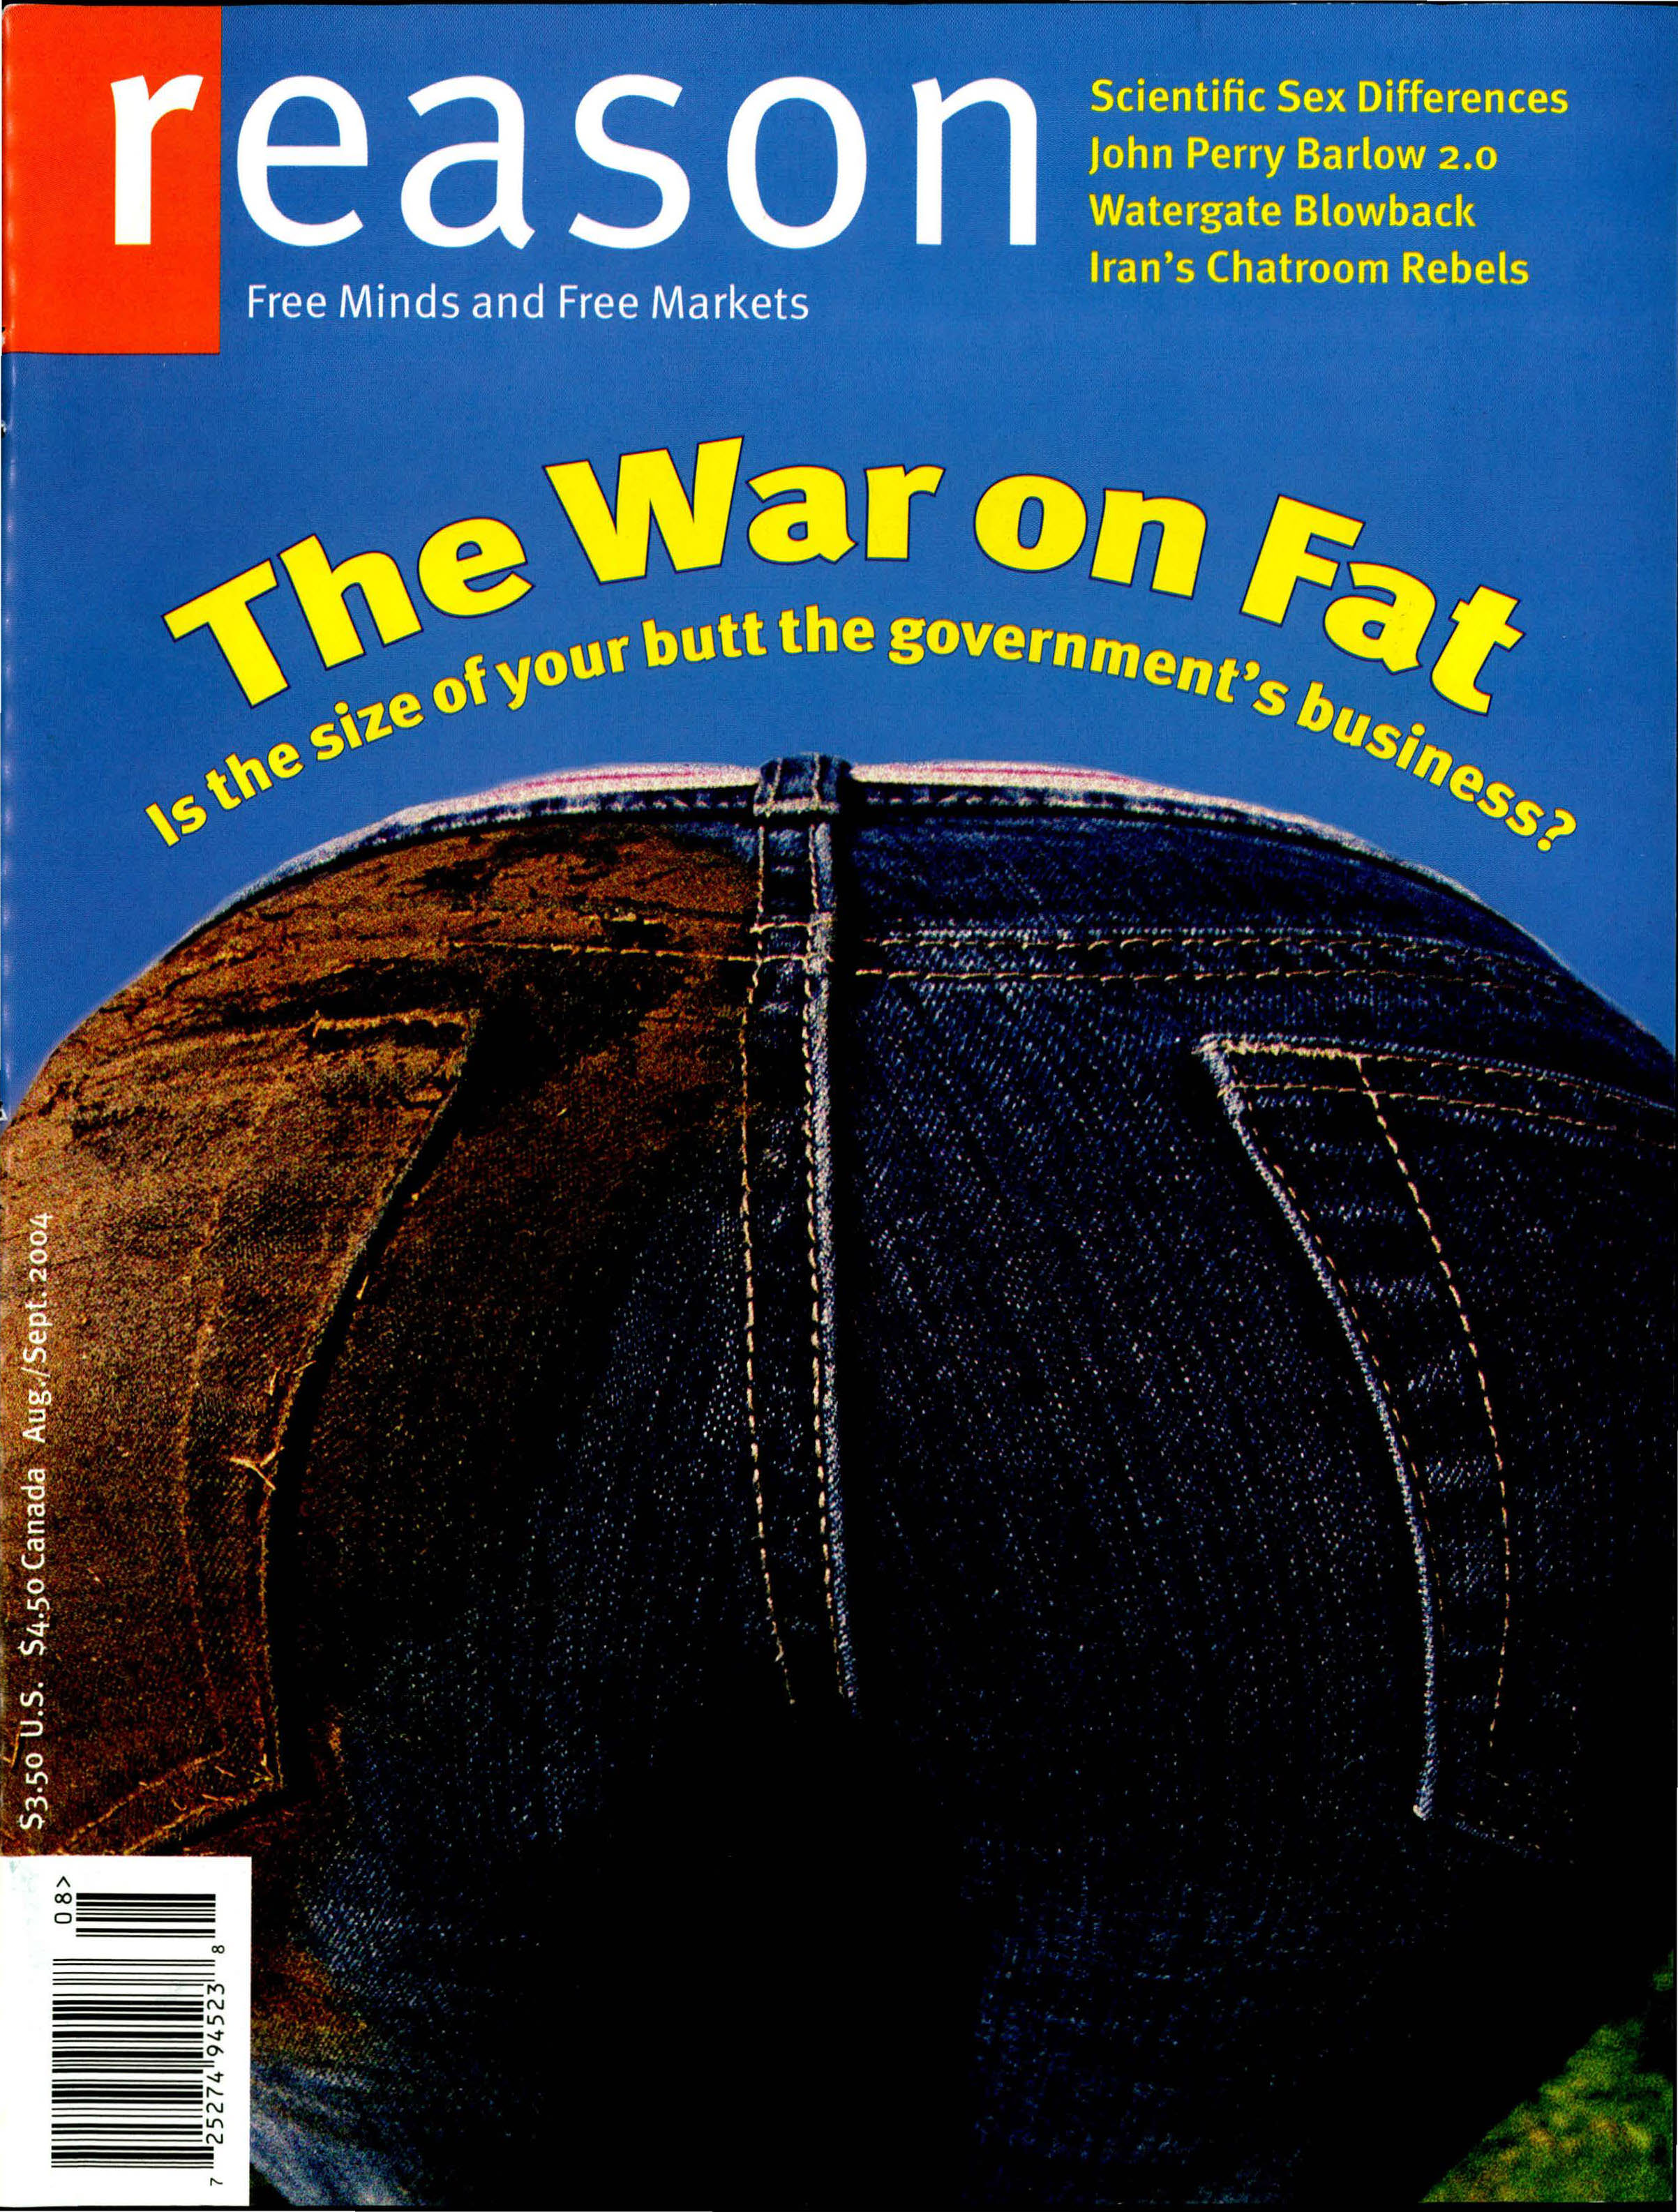 Reason Magazine, August/September 2004 cover image